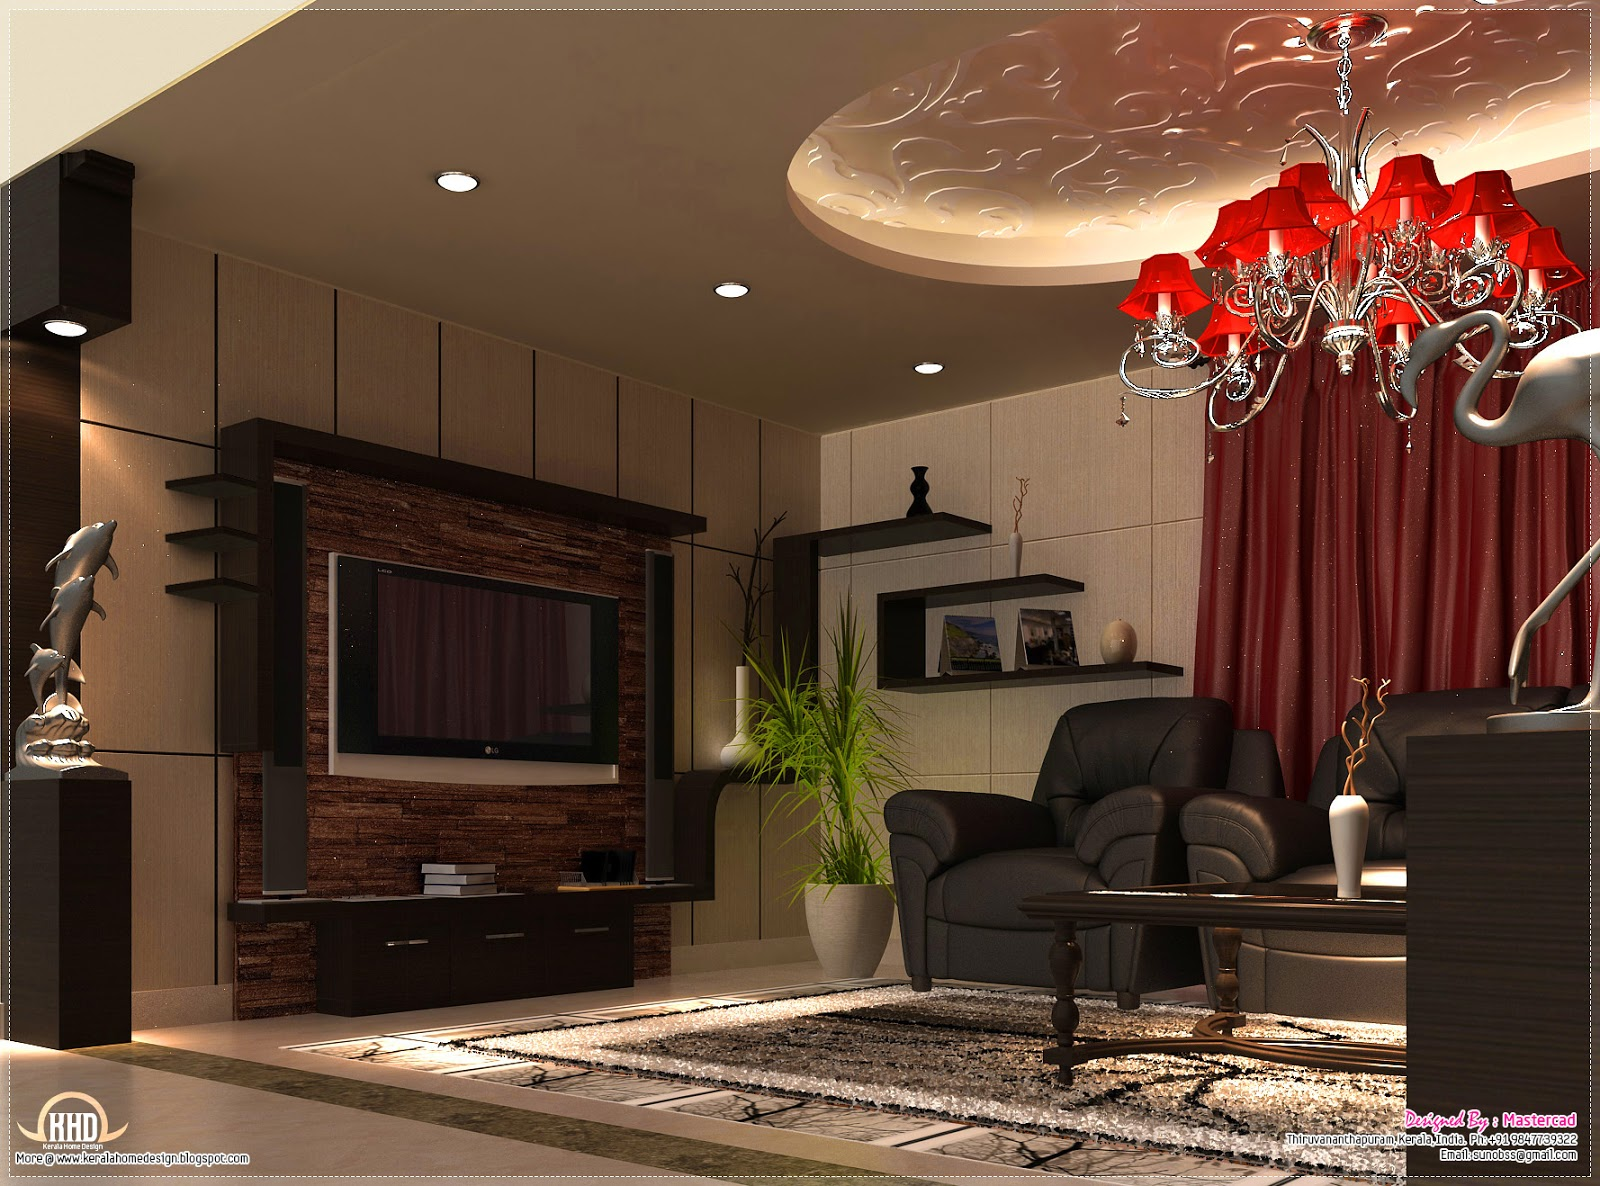 Interior design ideas home kerala plans for New home interior ideas